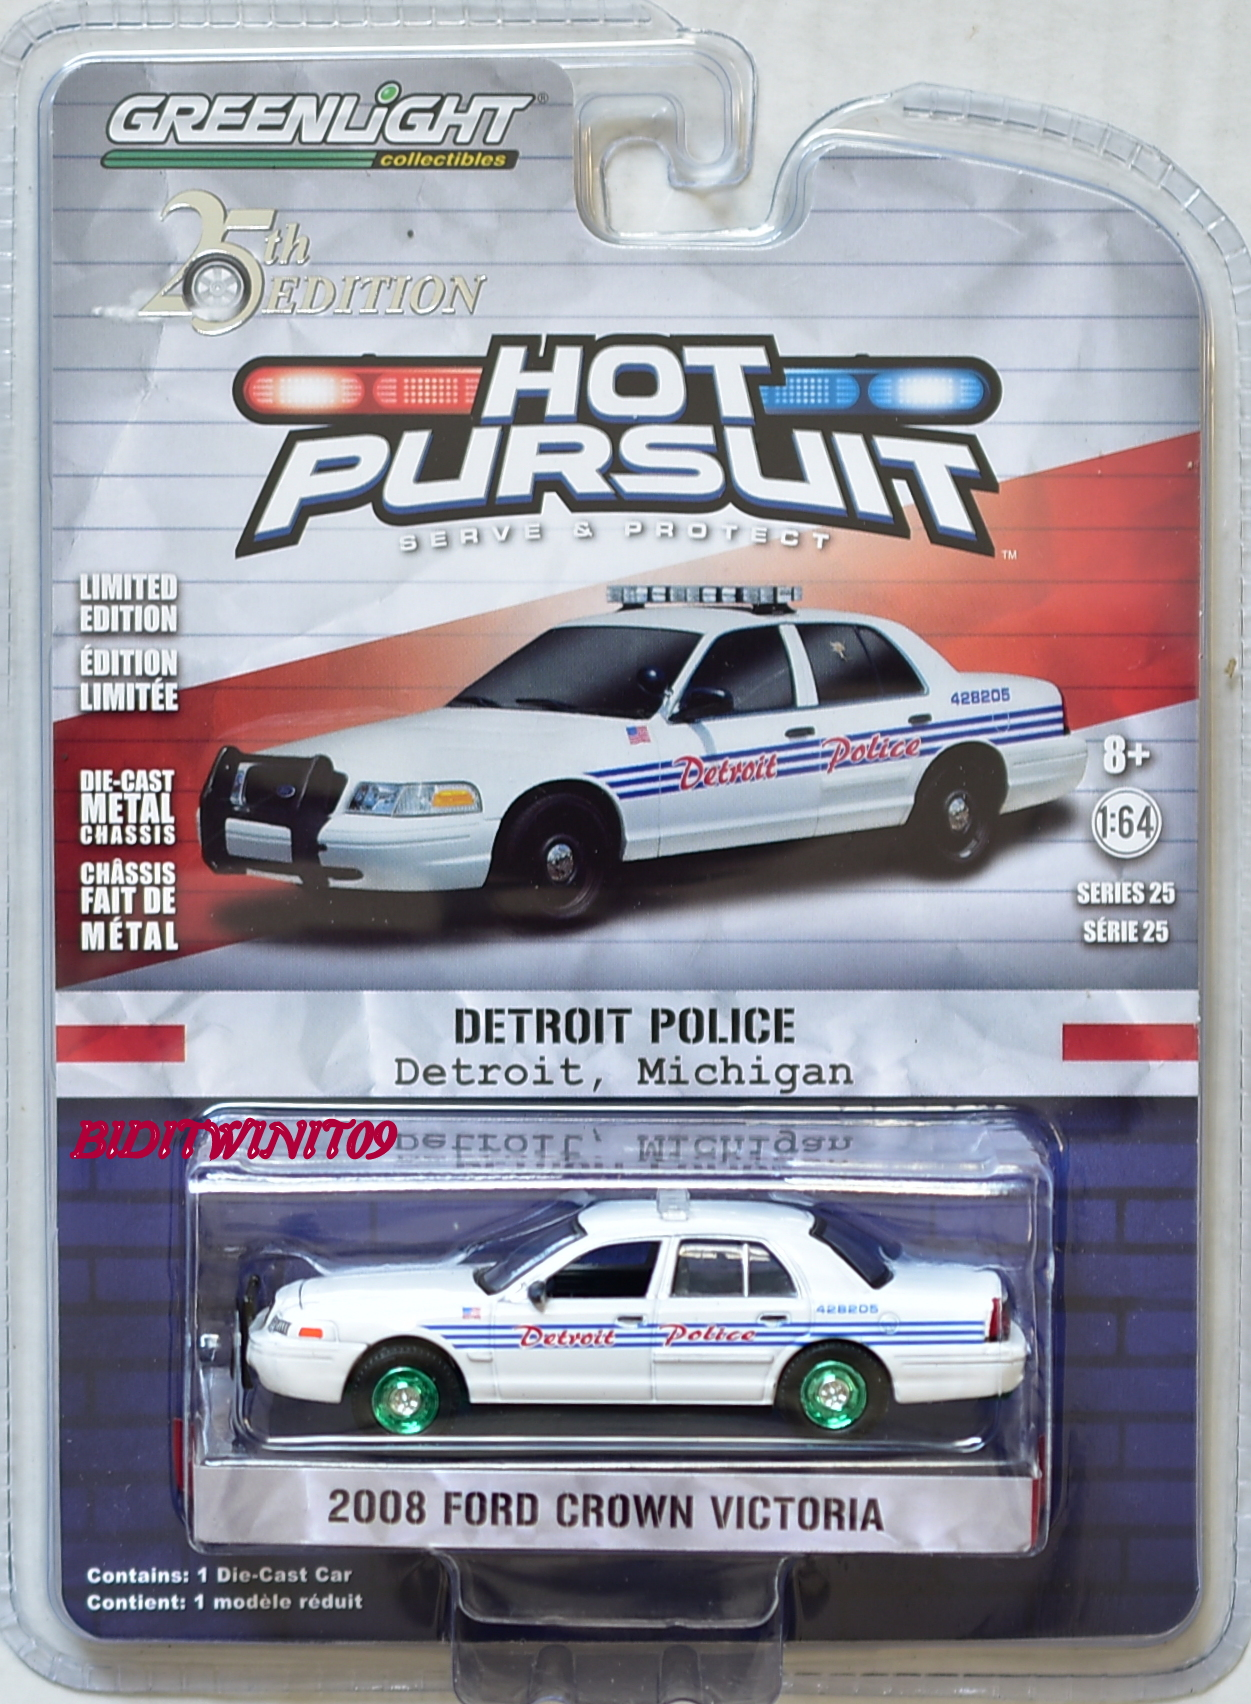 GREENLIGHT 2018 HOT PURSUIT SERIES 25 2008 FORD CROWN VICTORIA GREEN MACHINE